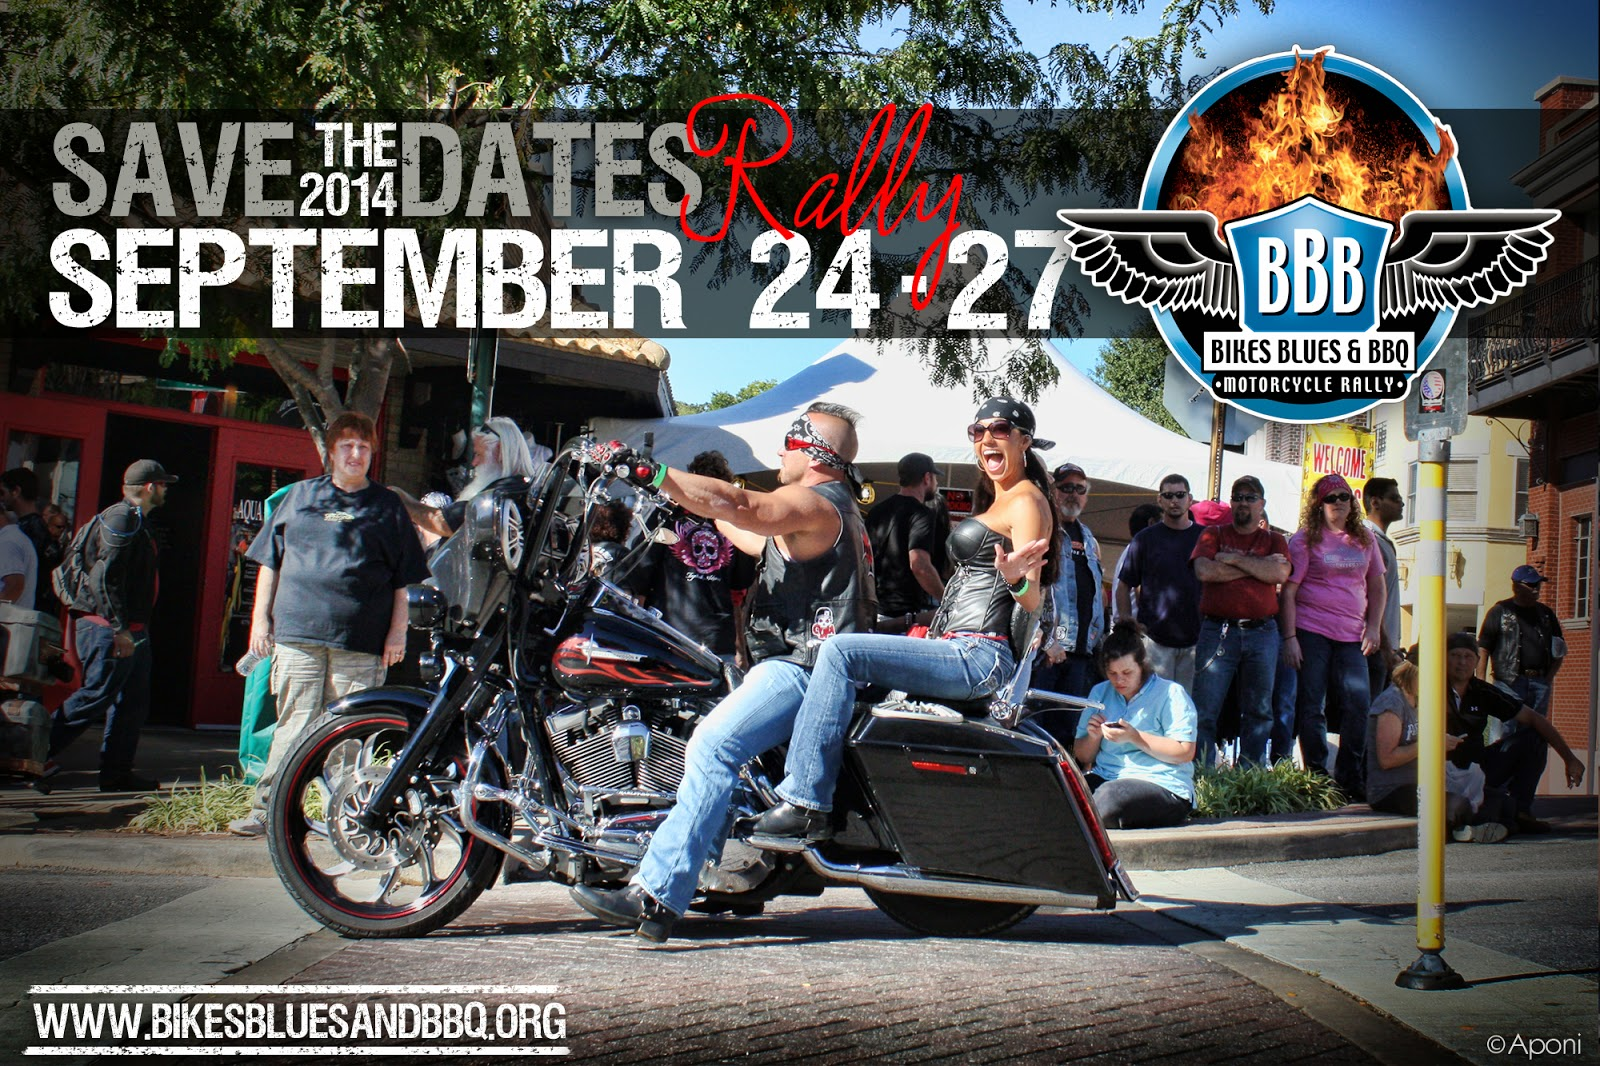 Bikes Blues And Bbq 2015 Dates Bikes Blues BBQ and more